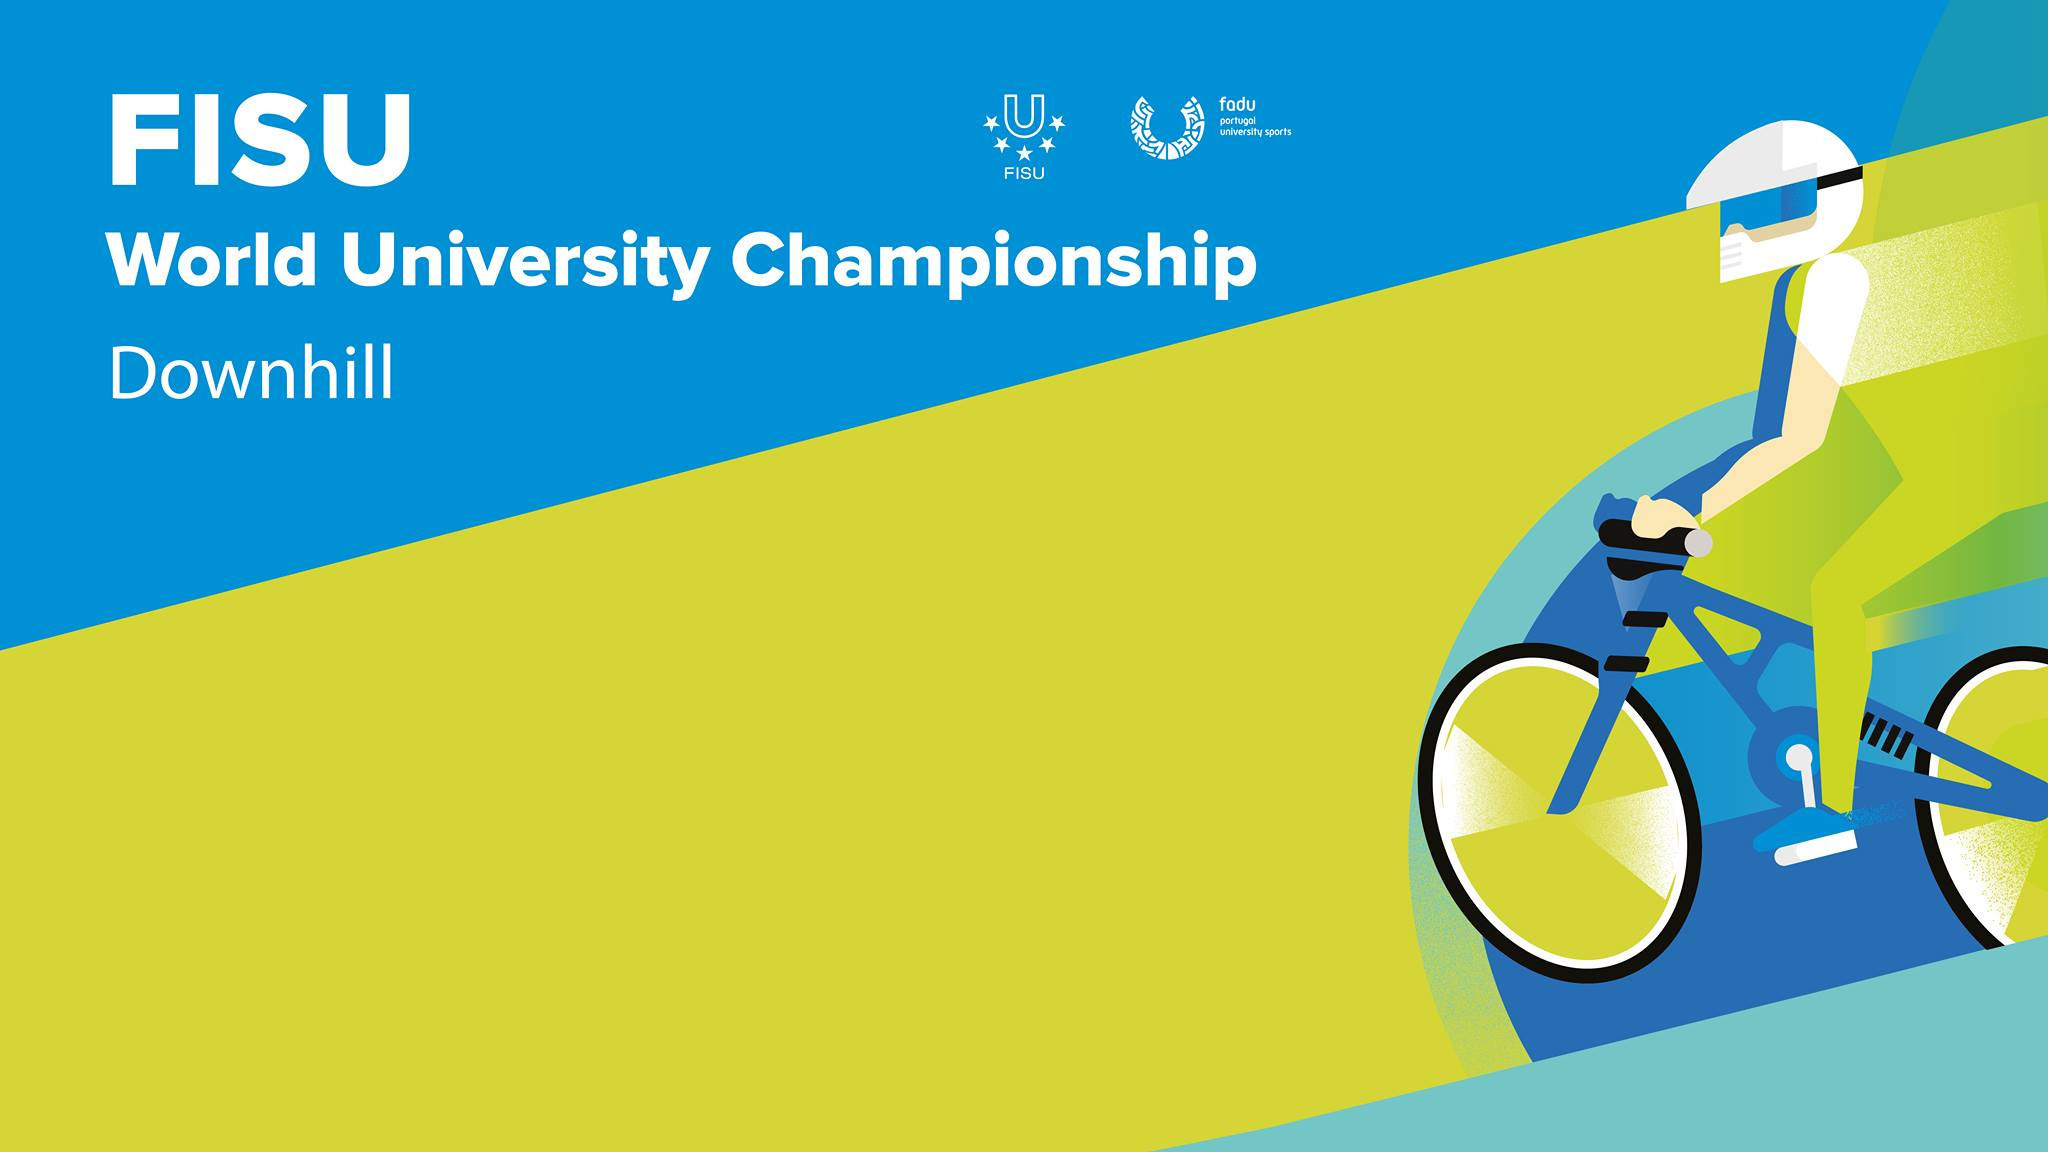 Portugal and Germany win downhill gold medals at World University Cycling Championships